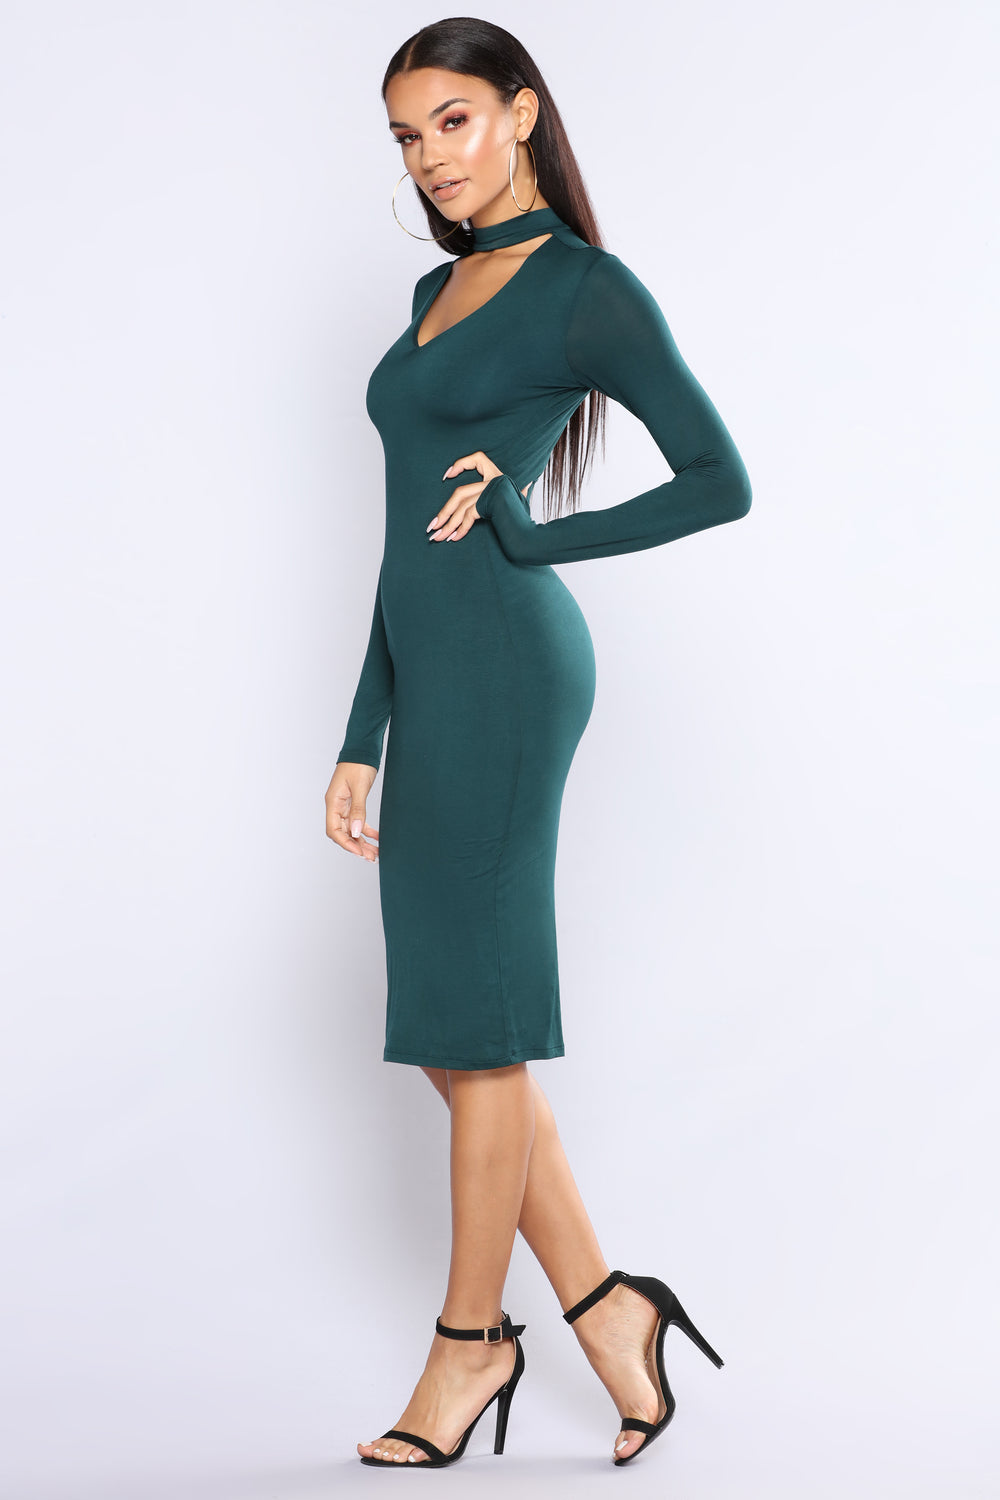 Different Beat Choker Dress - Hunter Green